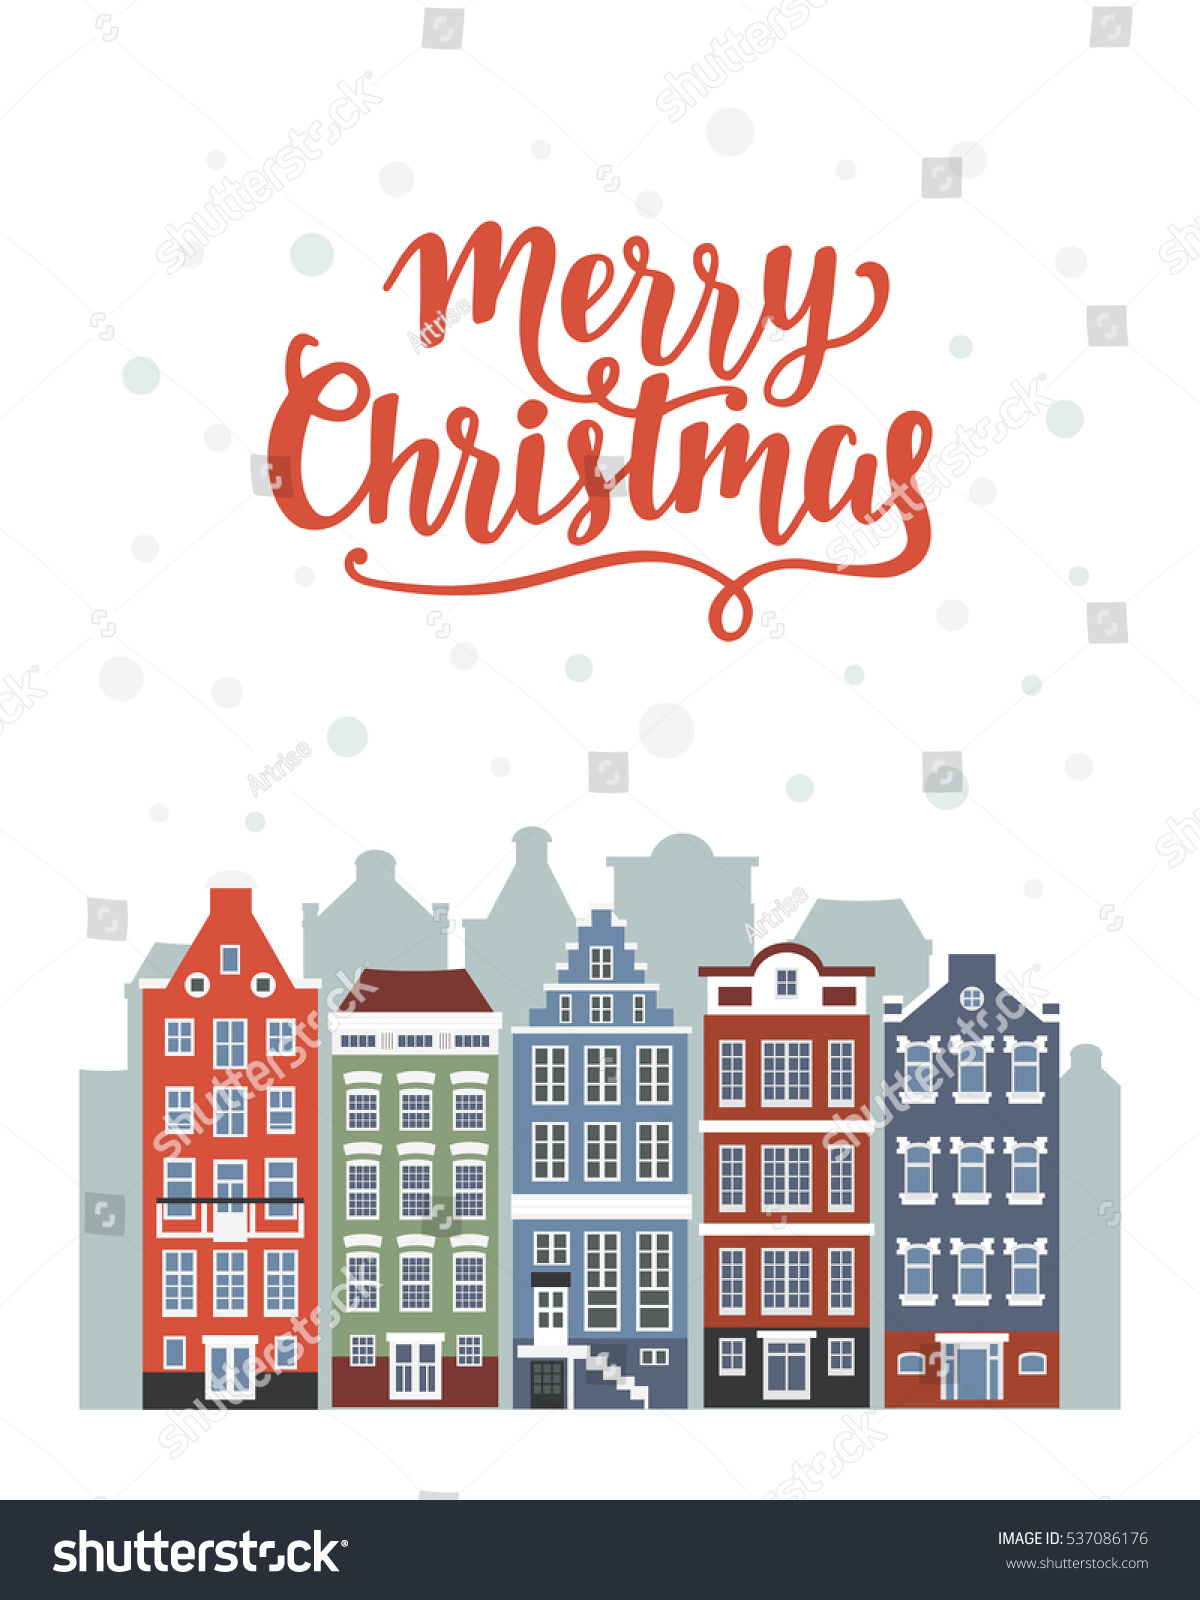 Royalty free stock illustration of merry christmas greeting card merry christmas greeting card with winter amsterdam houses vintage card illustration m4hsunfo